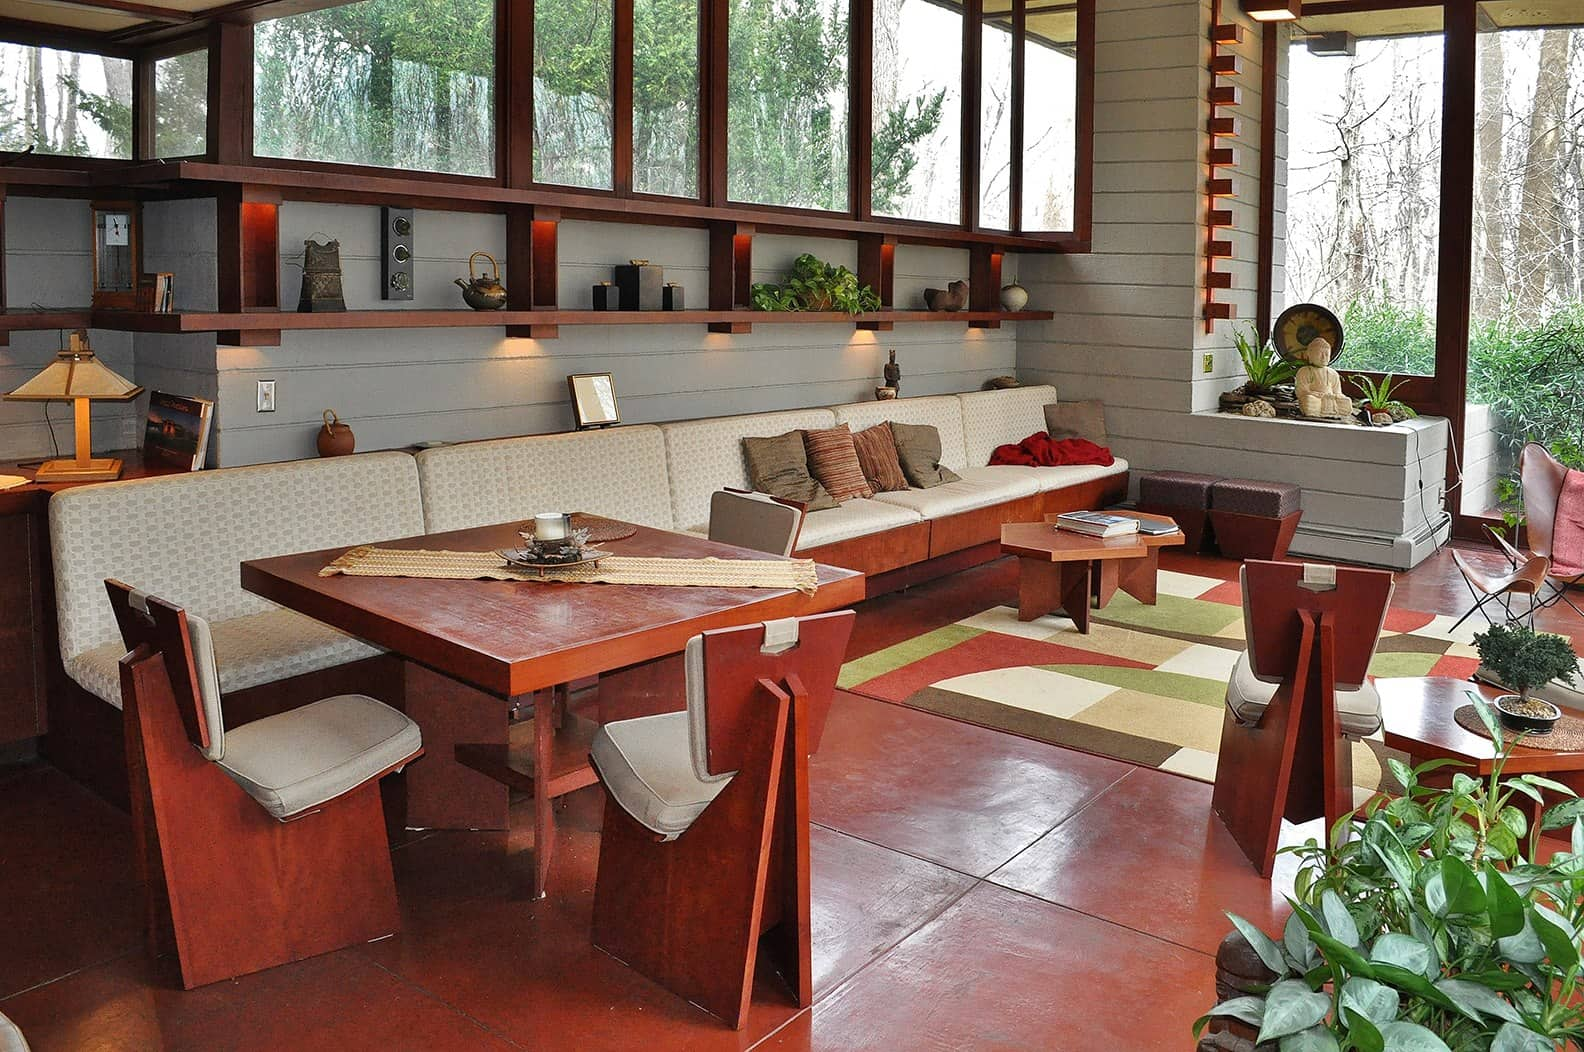 The Frank Lloyd Wright's Penfield House interior living room